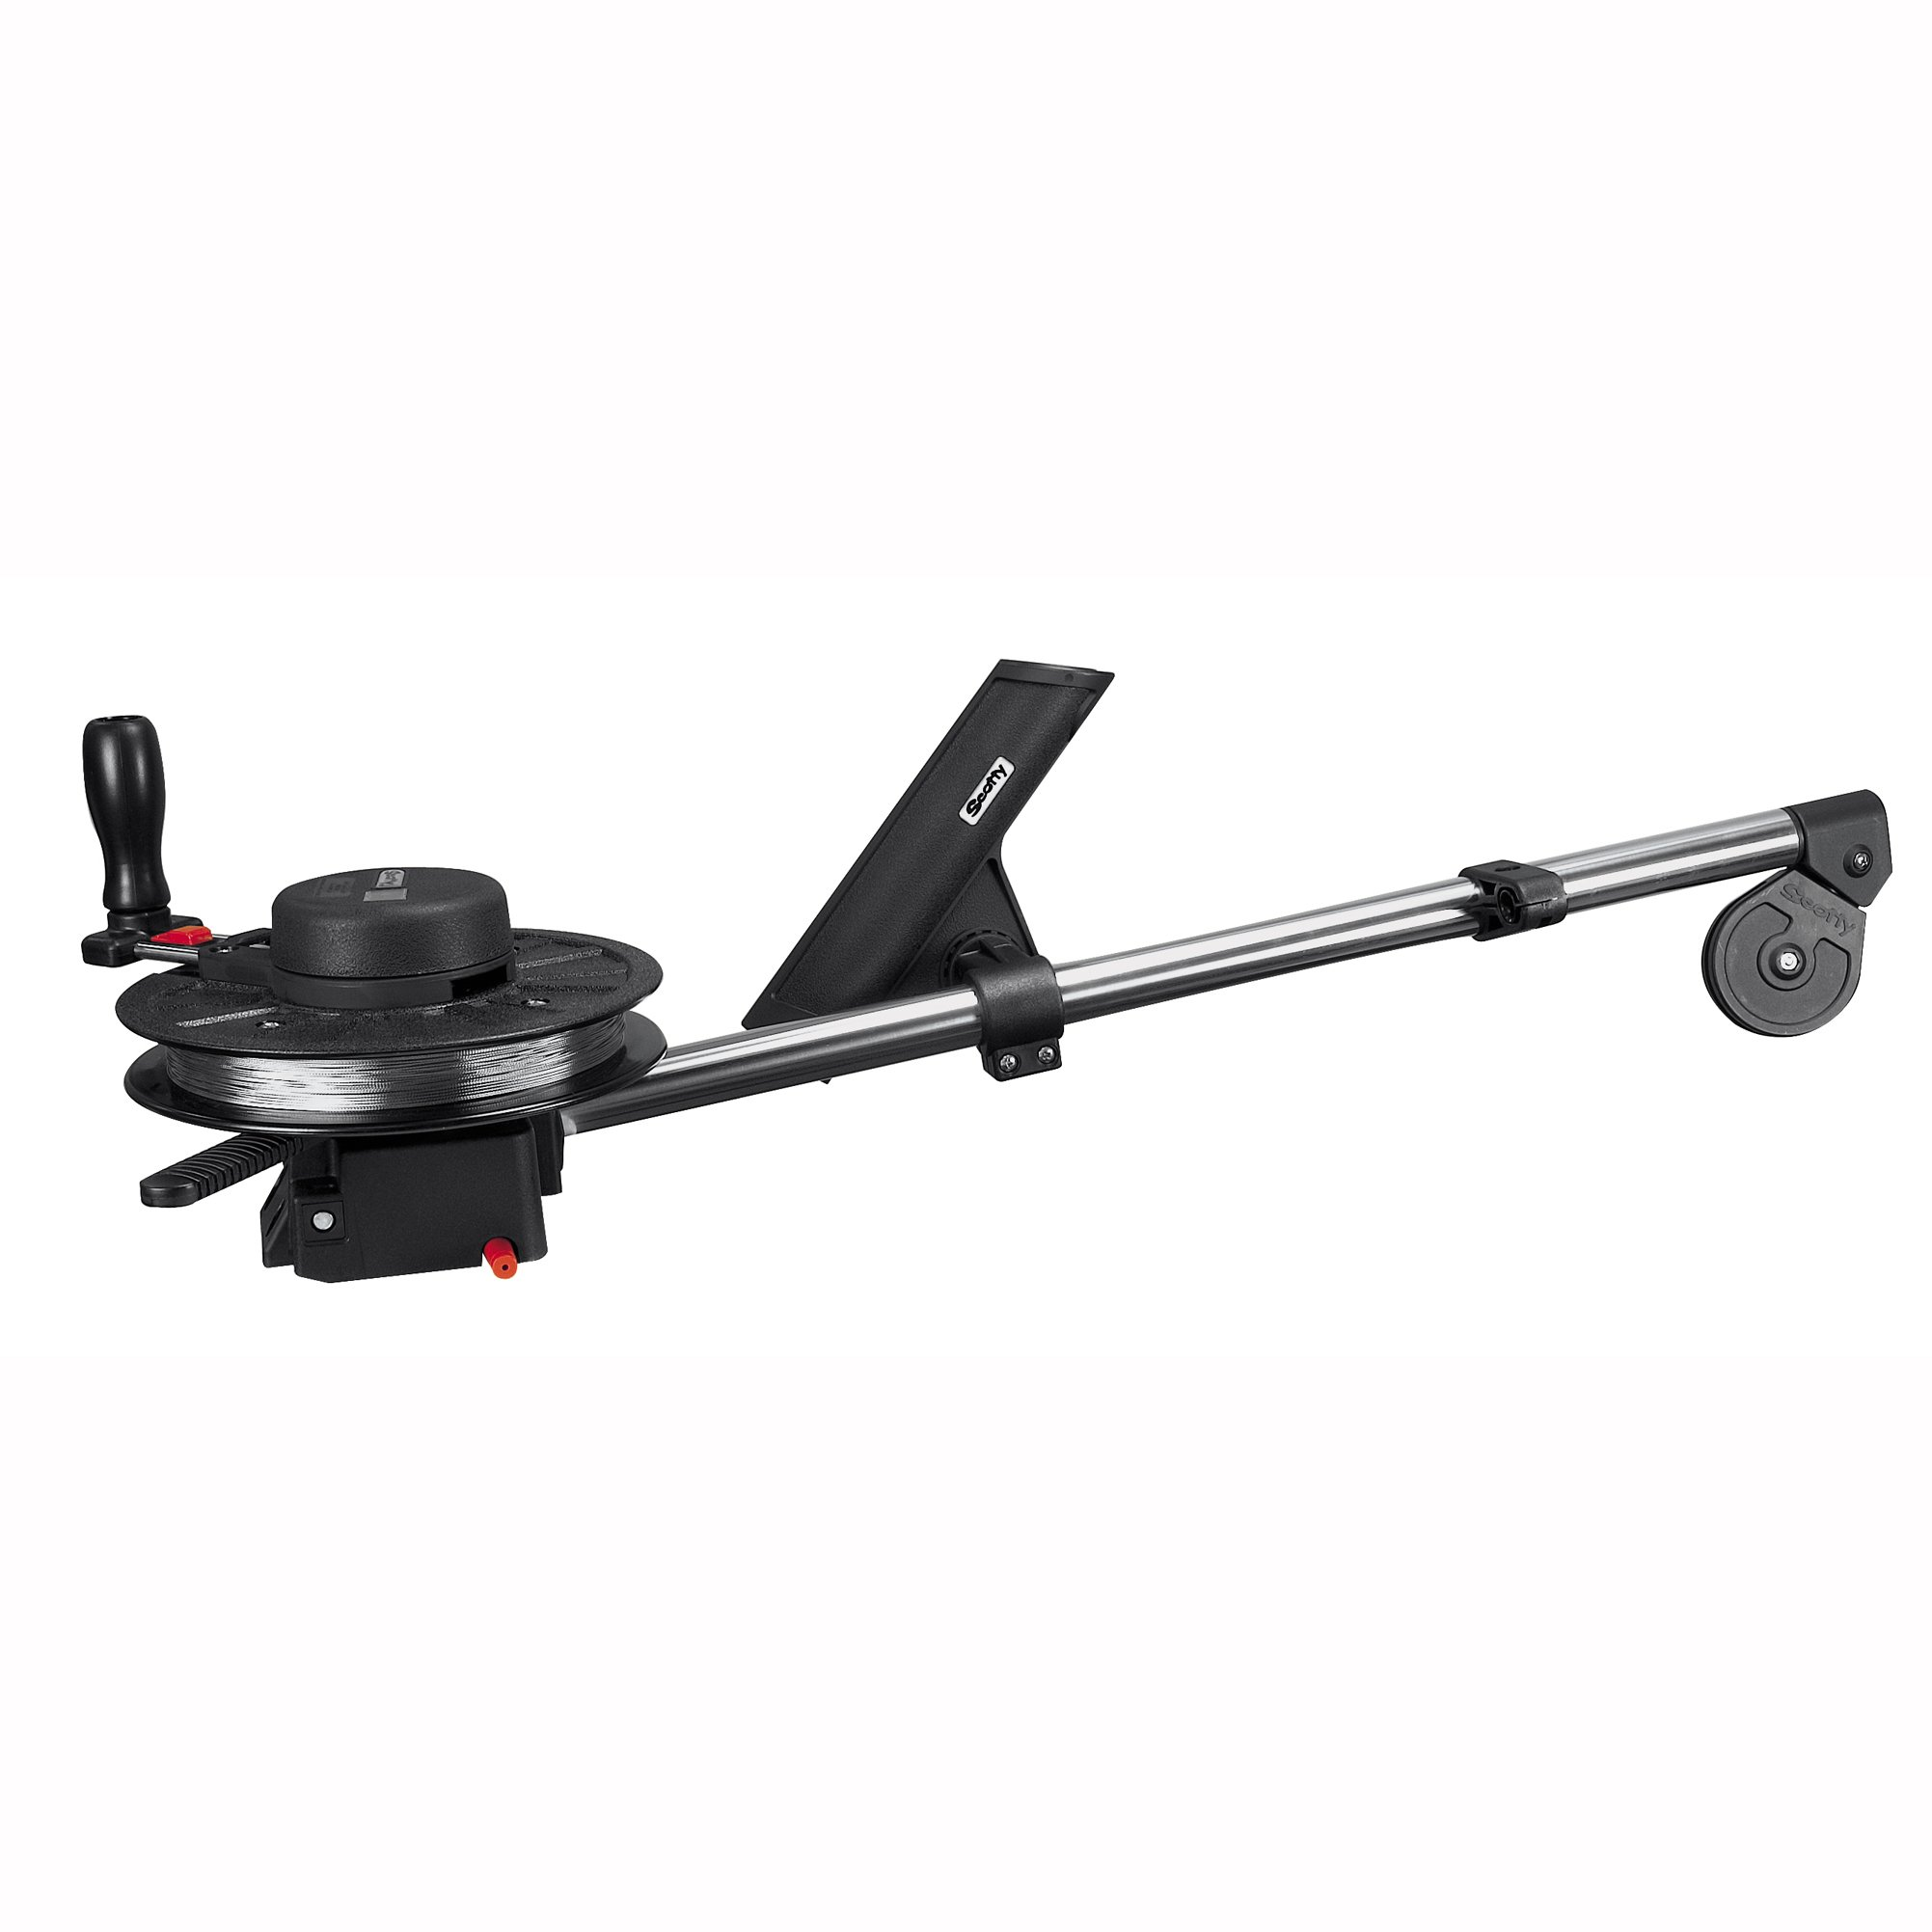 Scotty #1085 Strongarm Manual Downrigger w/ 30-Inch Boom w/ Rod Holder by Scotty